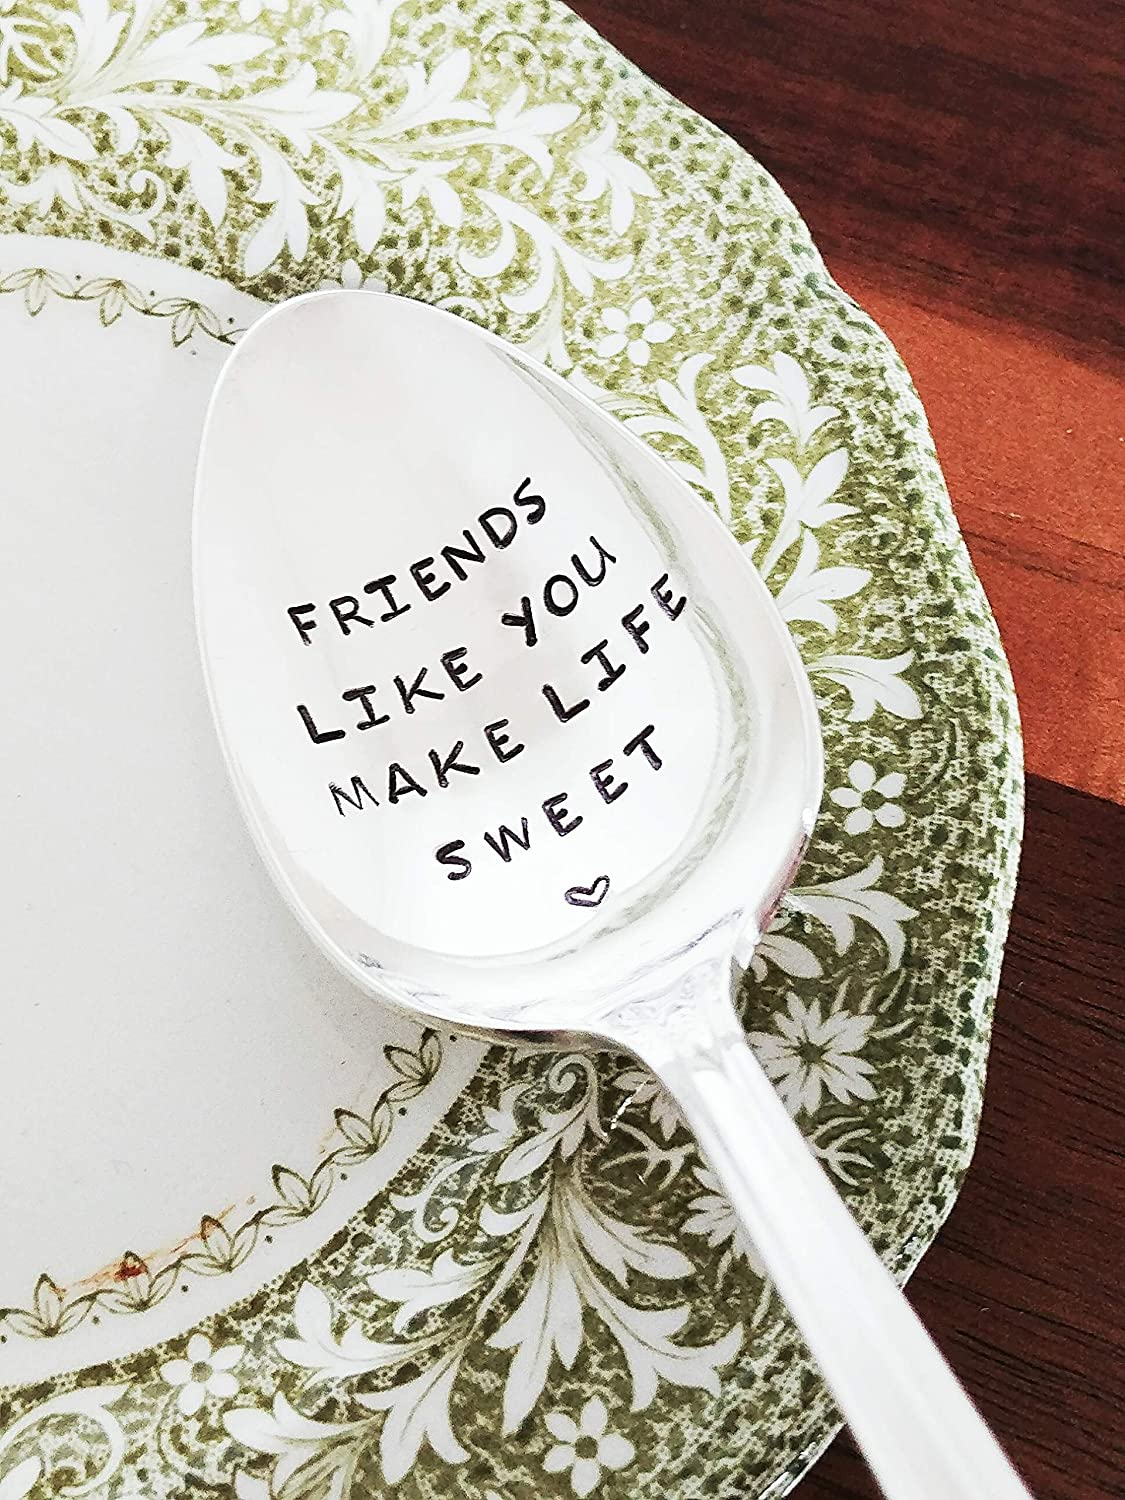 FRIENDS LIKE YOU MAKE LIFE SWEET - Best Friend - Hand Stamped Spoon Gift - Hostess Gift